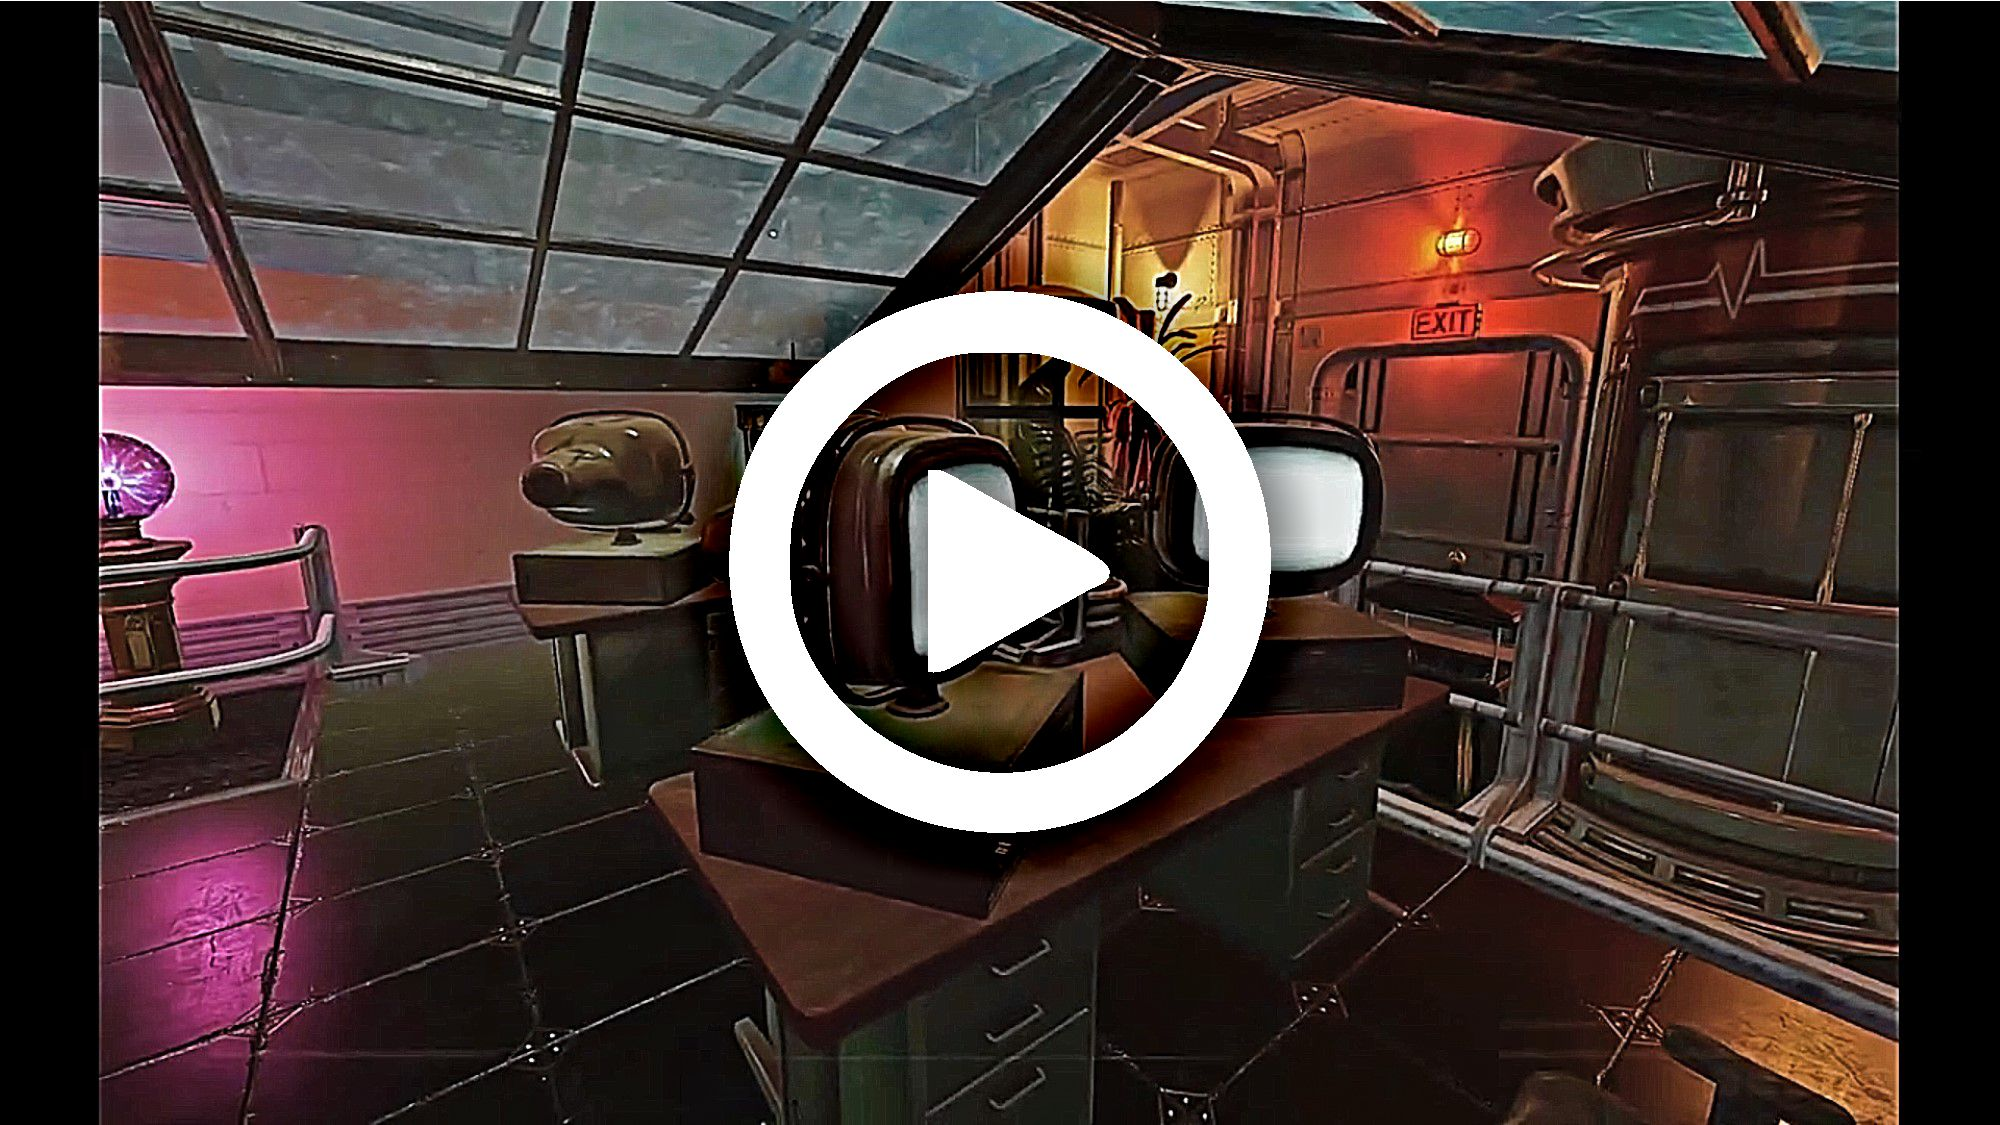 Starshade Officers Lounge play video image link.